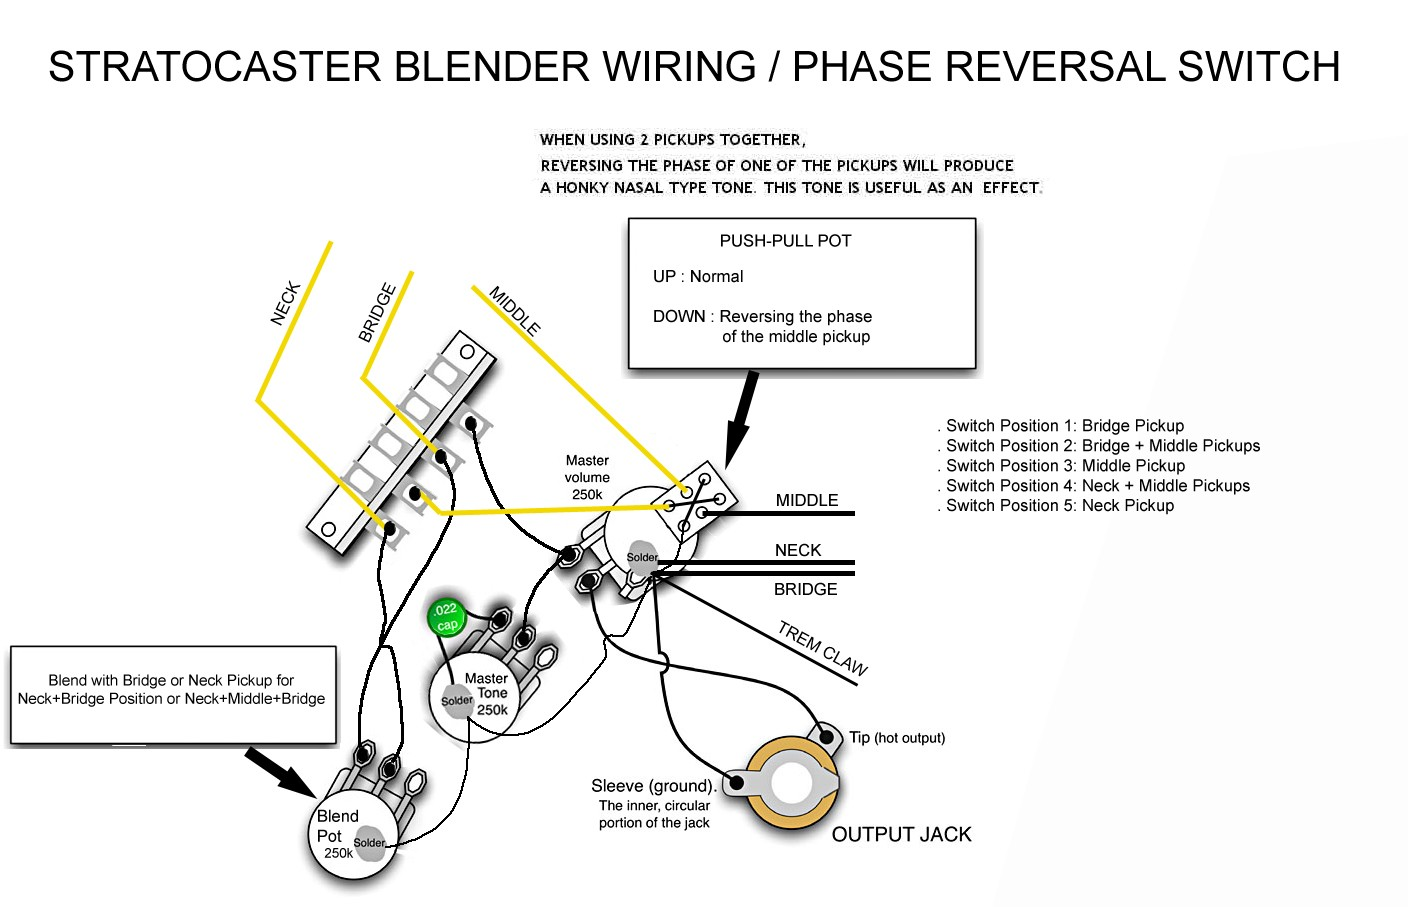 Cool How To Install A Remote Starter Huge Hss Wiring Flat Excalibur Remote Start Installation 3 Way Switch Guitar Young Bulldog Remote Start Installation GreenSuper Switch Wiring Fender Nashville Telecaster Wiring Diagram   Blonton